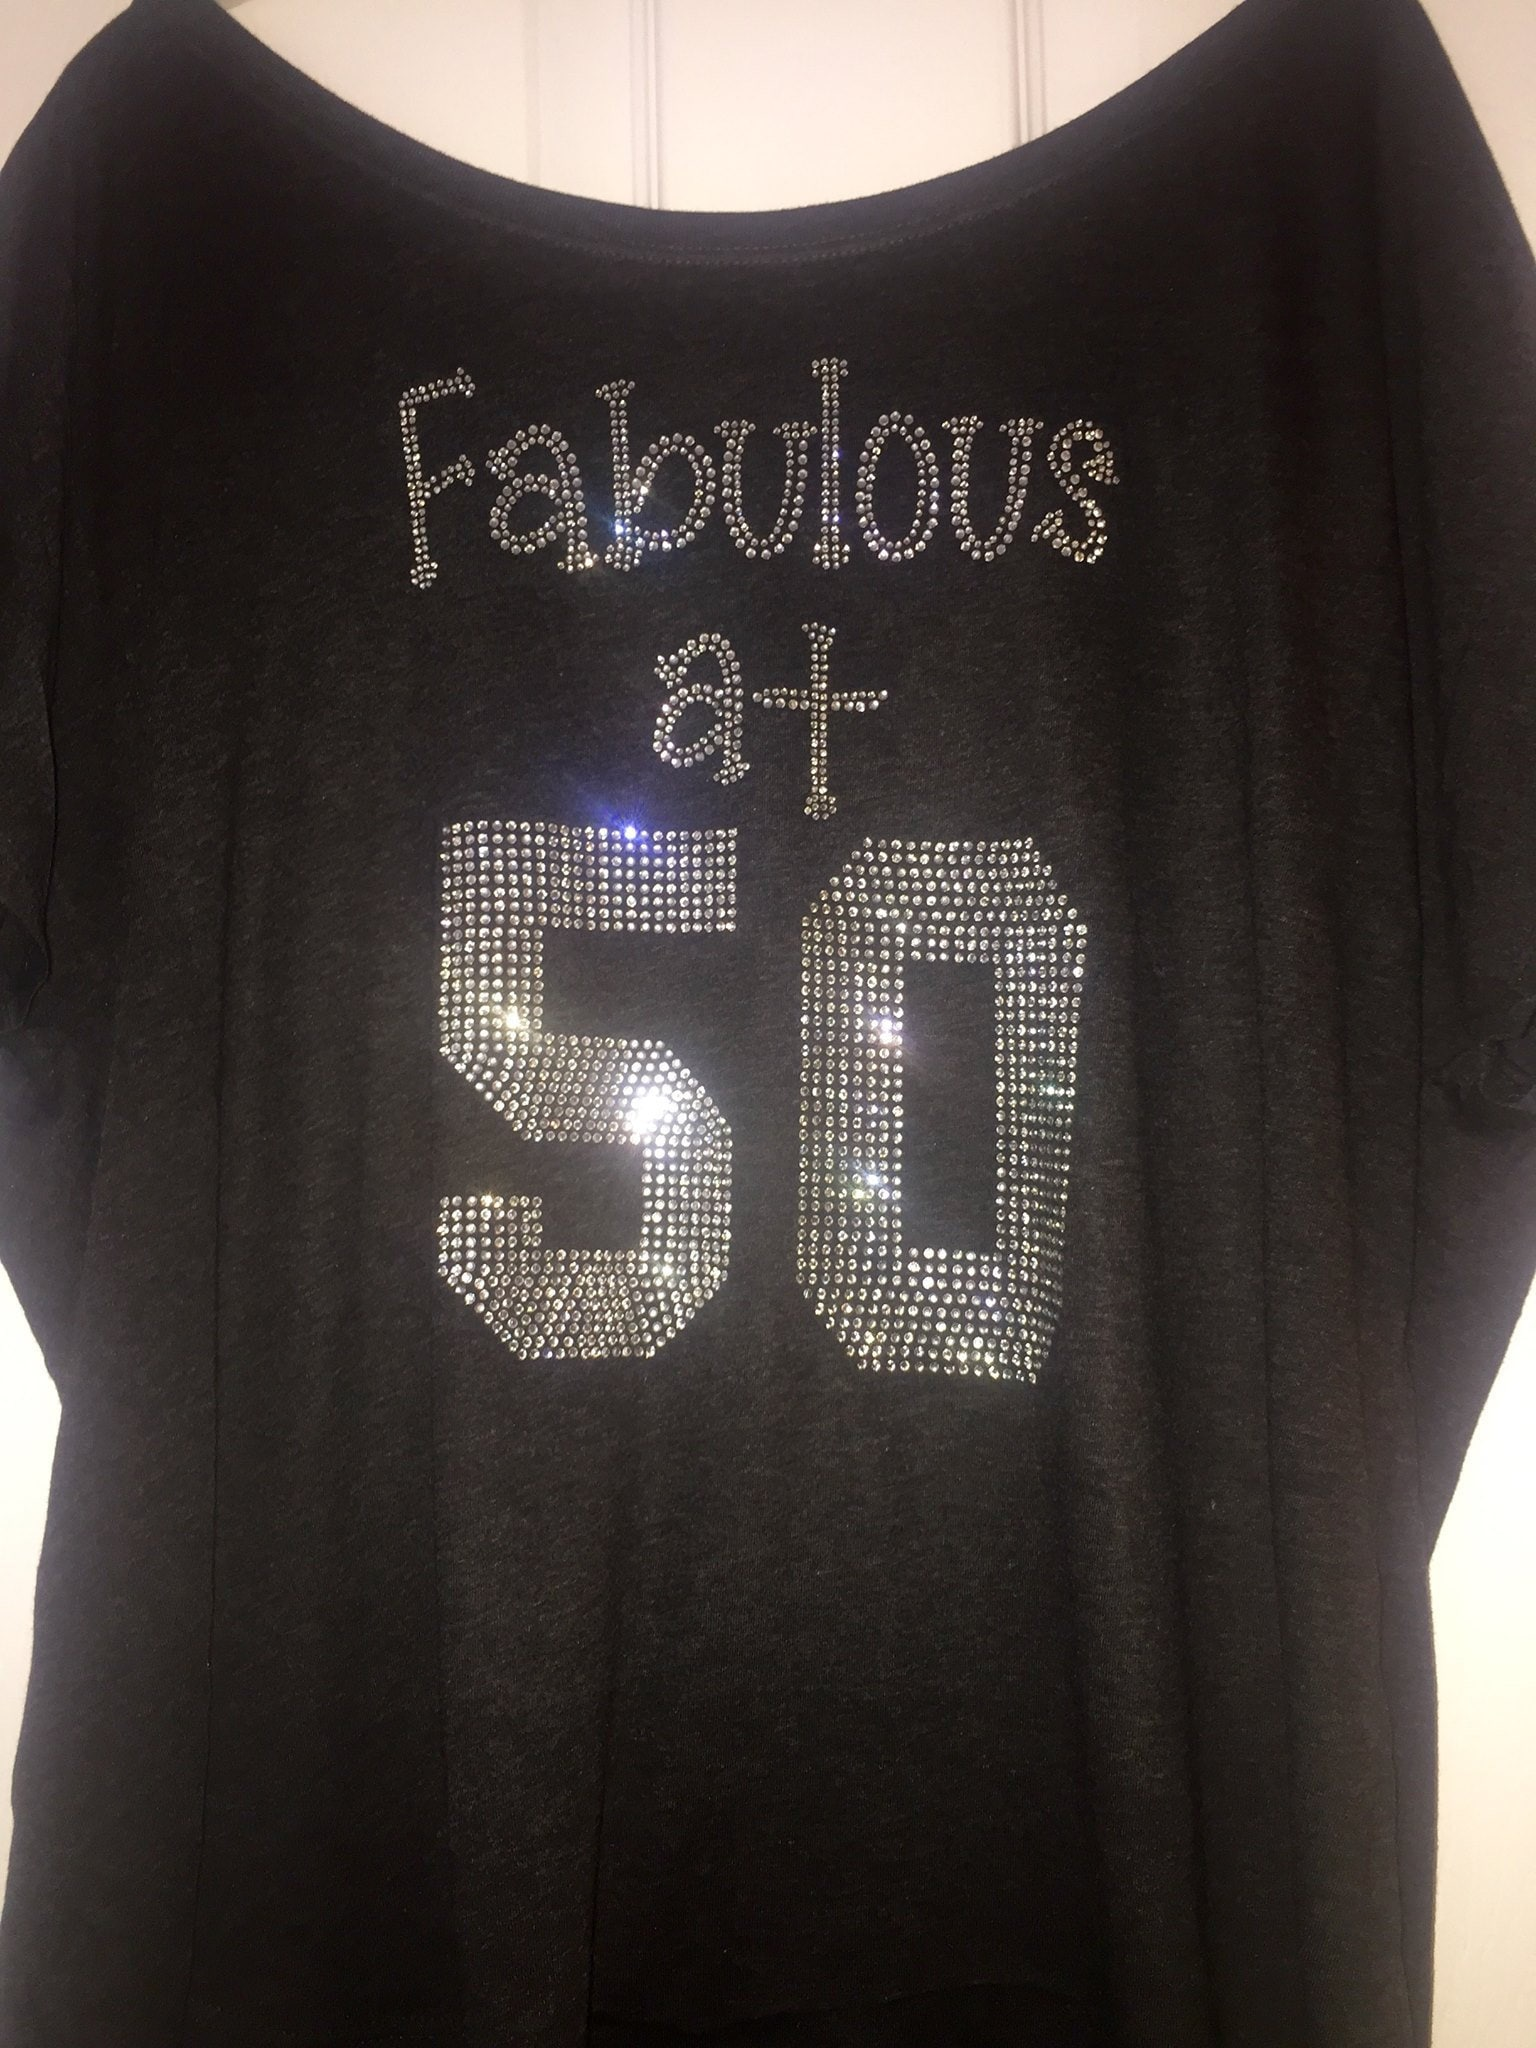 T Shirts For 50th Birthday Party